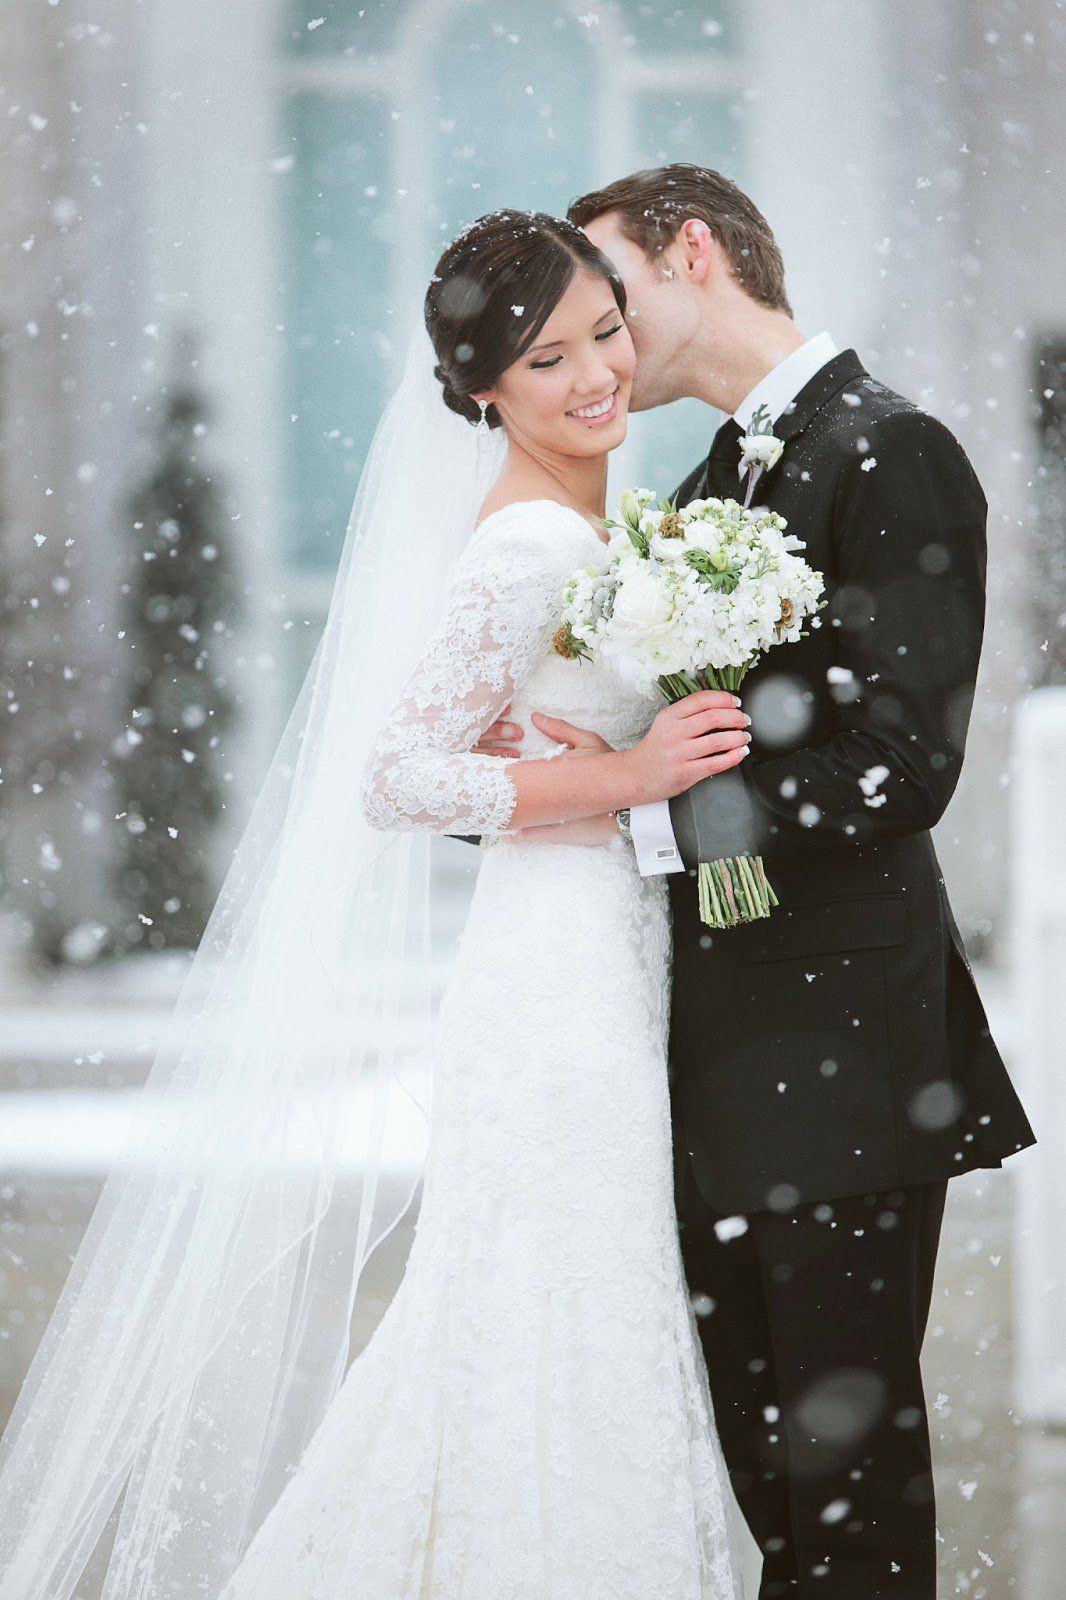 Long lace sleeves, long veil // perfect dress for a winter wedding